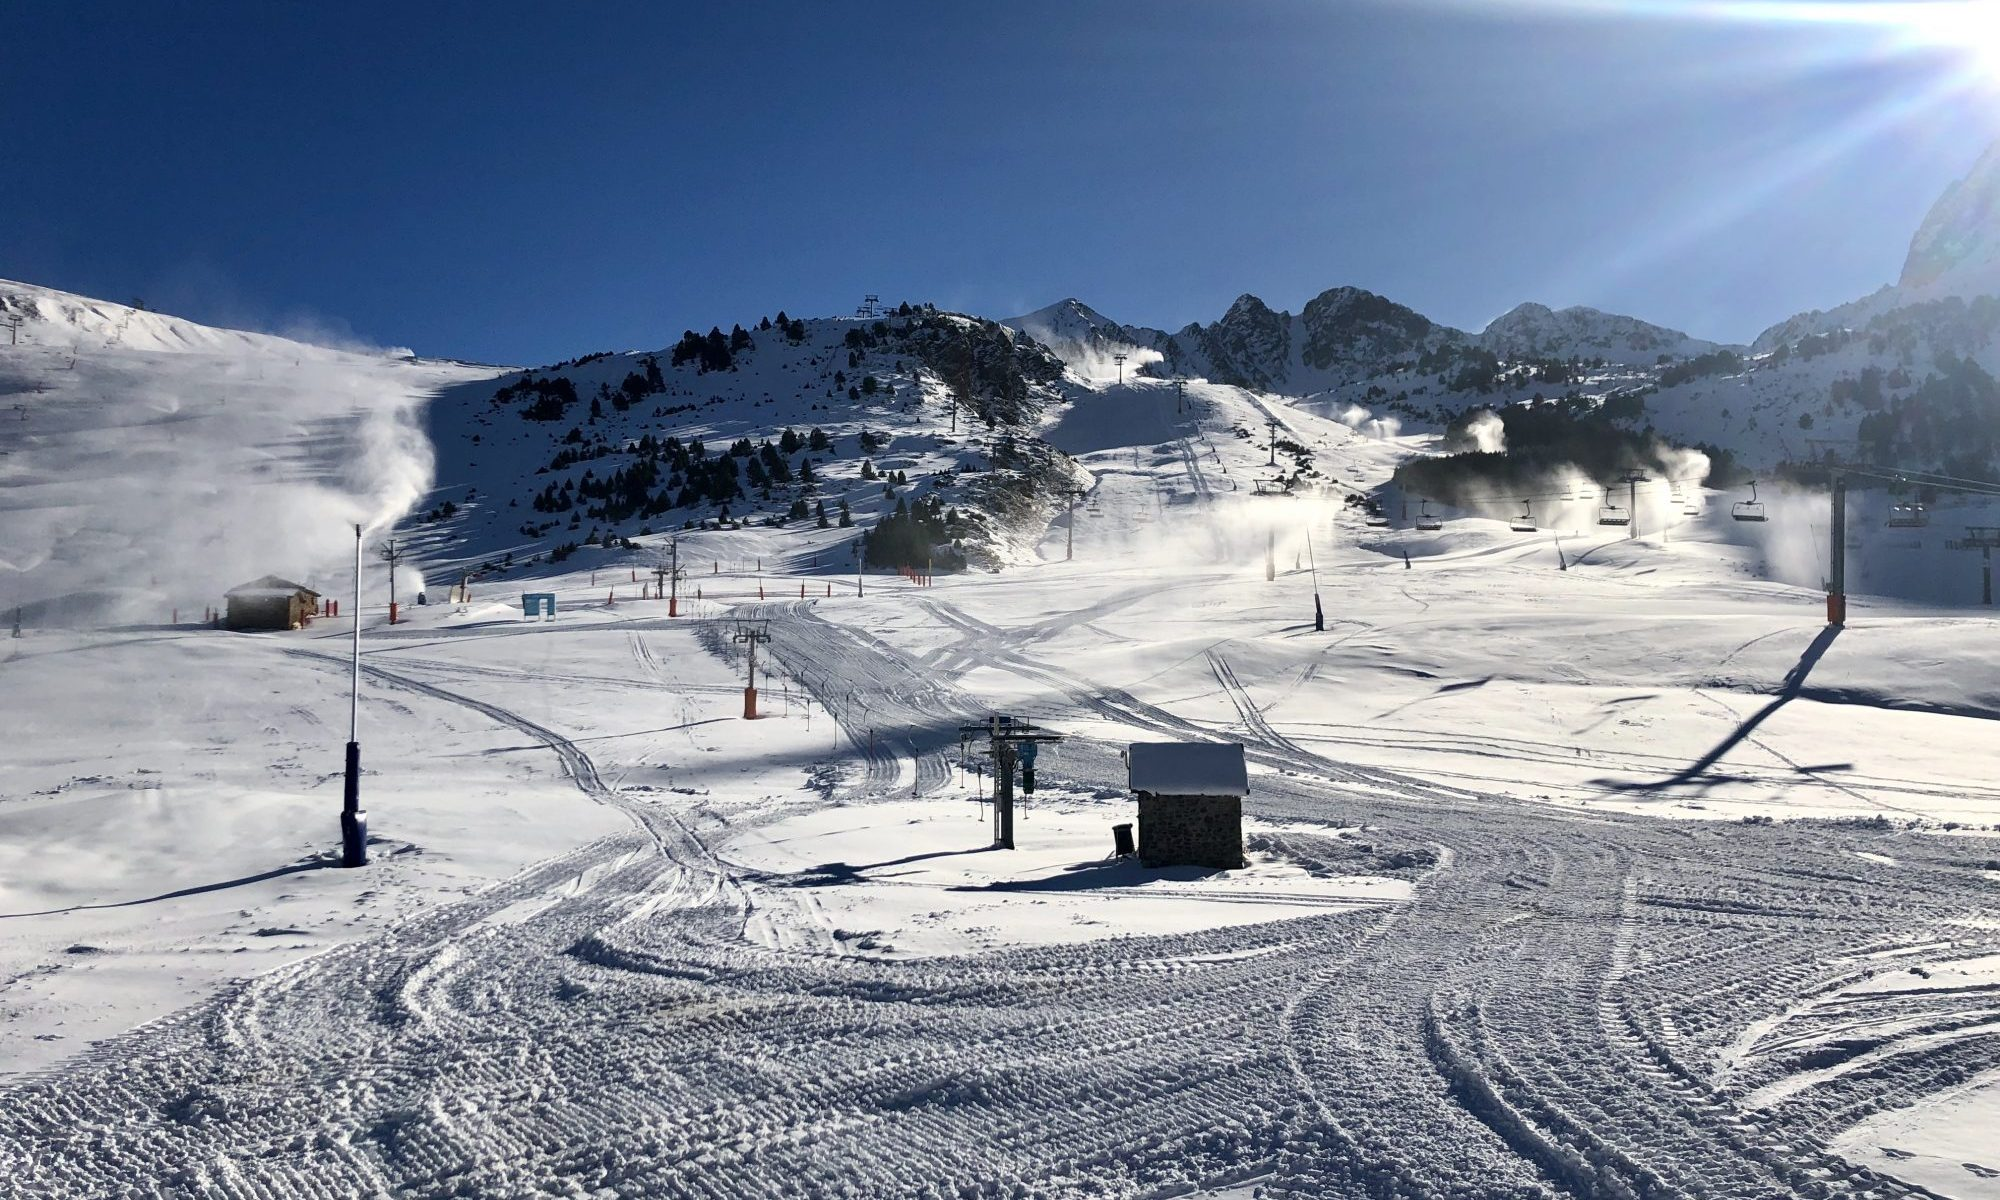 Sector Grau Roig. Grandvalira kick-starts the season this Saturday 1st of December with the partial opening of the Pas de la Casa and Grau Roig sectors.Photo: Grandvalira.